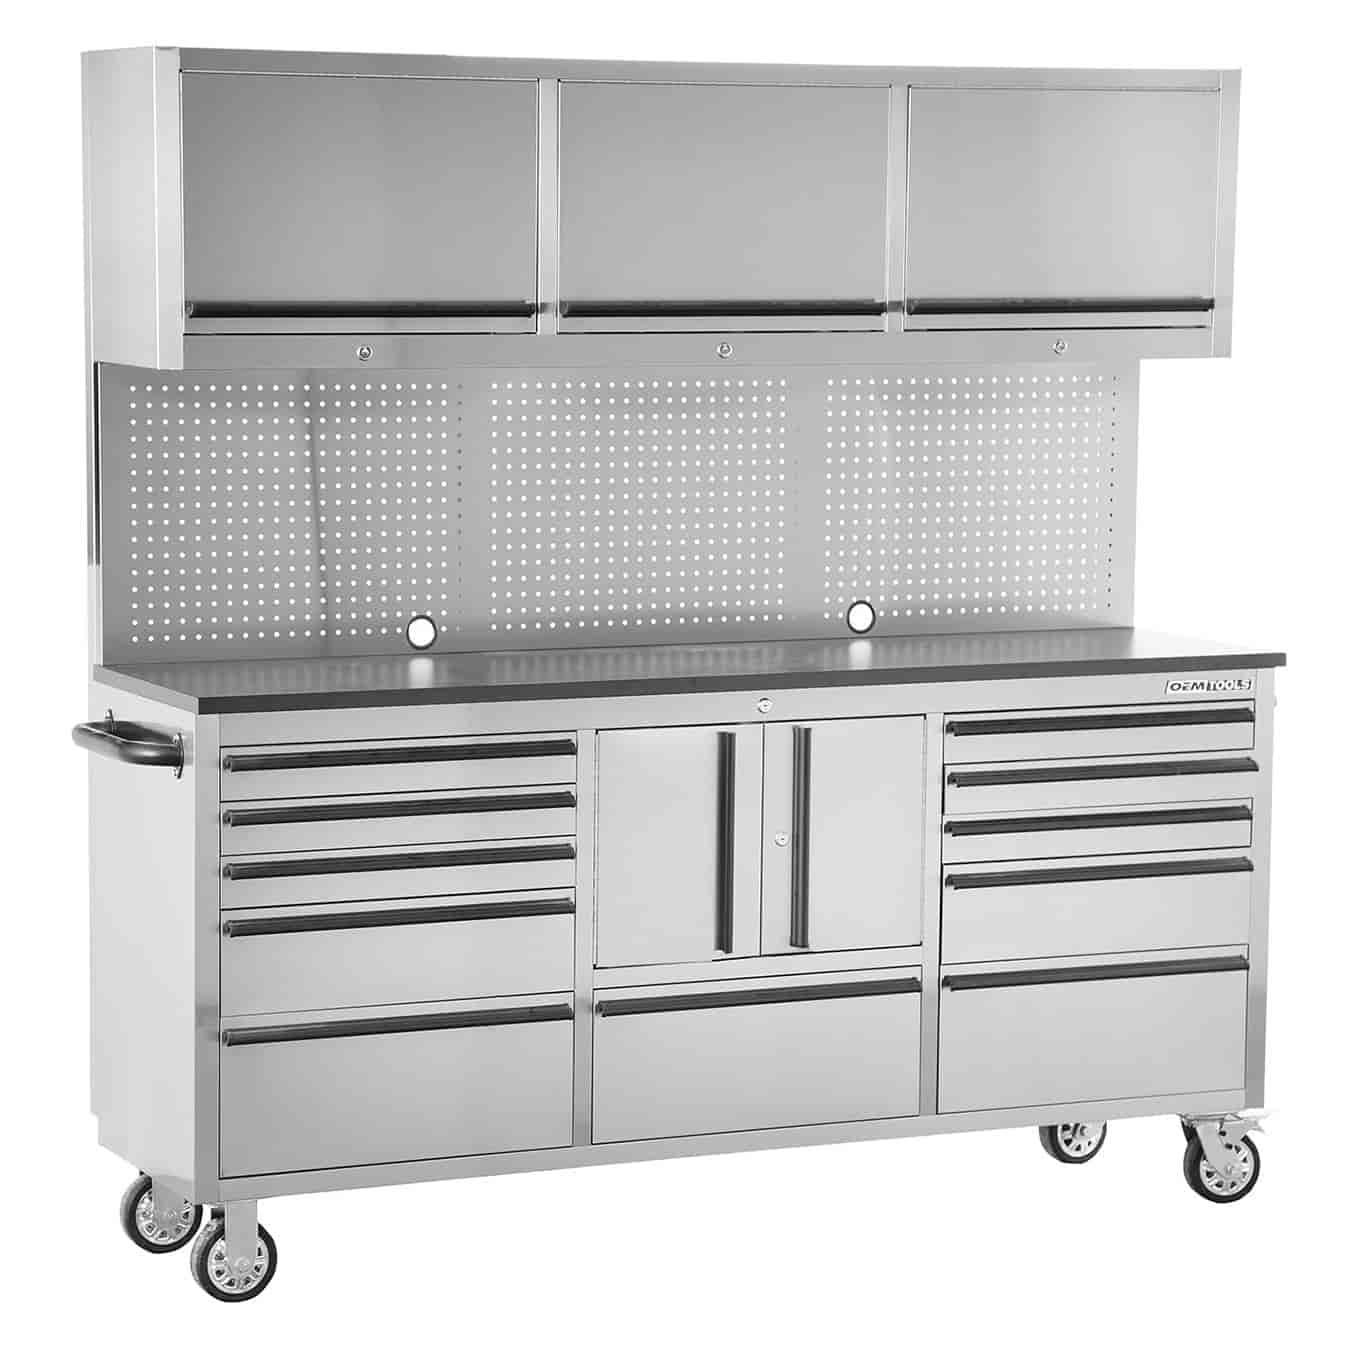 OEMTOOLS 24615 72 In. 11 Drawer Tool Box And Upper Cabinet